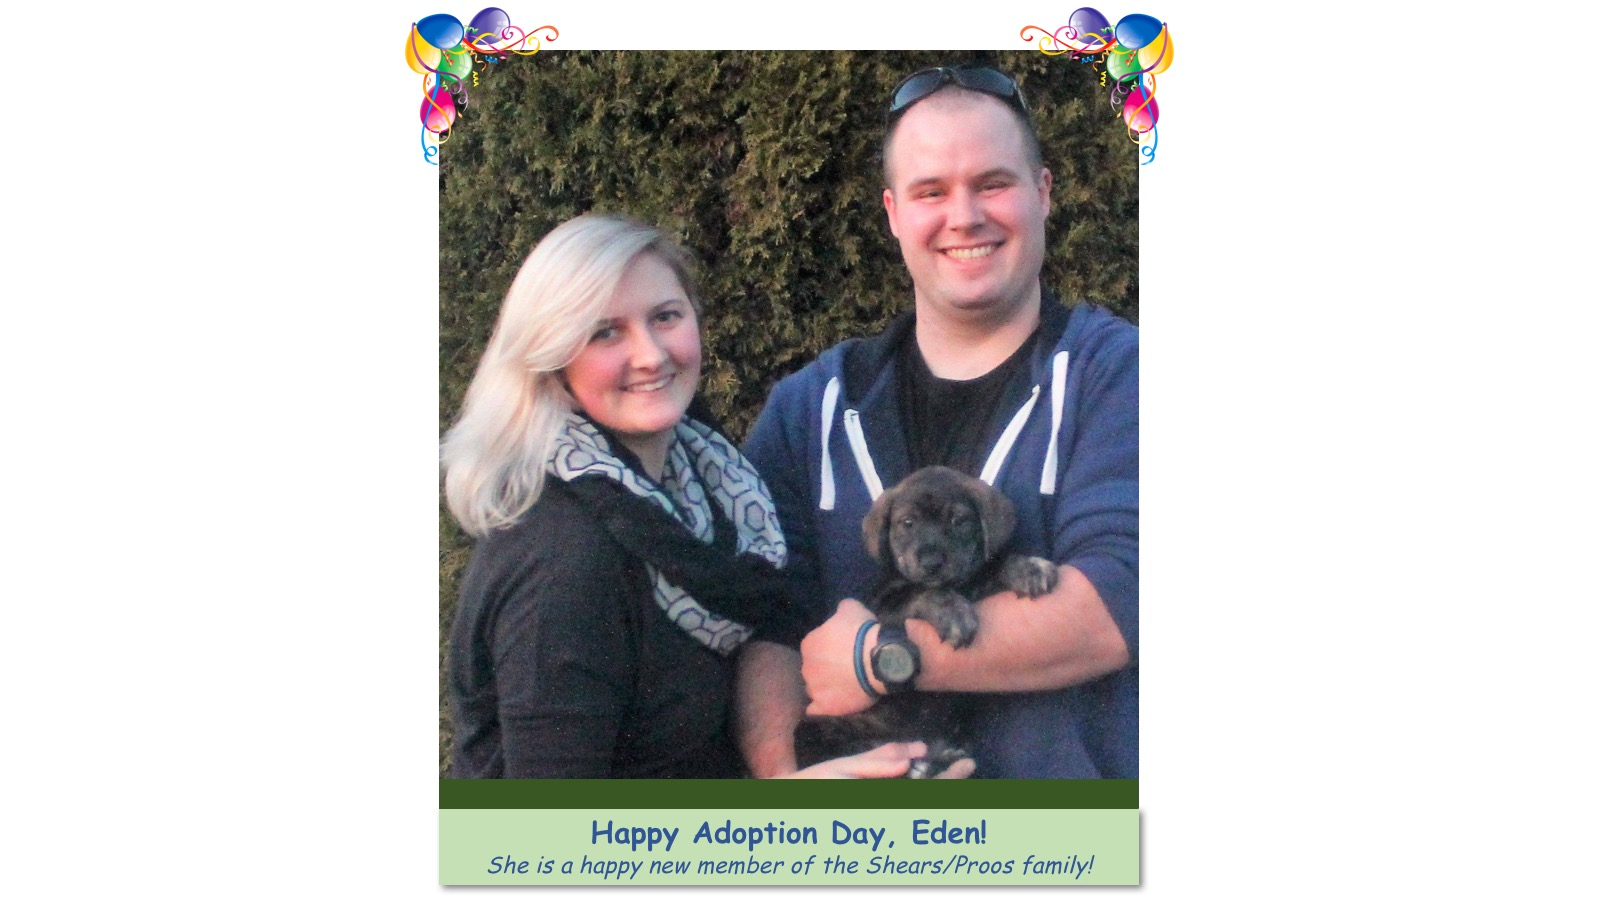 Eden_Adoption_photo.jpg